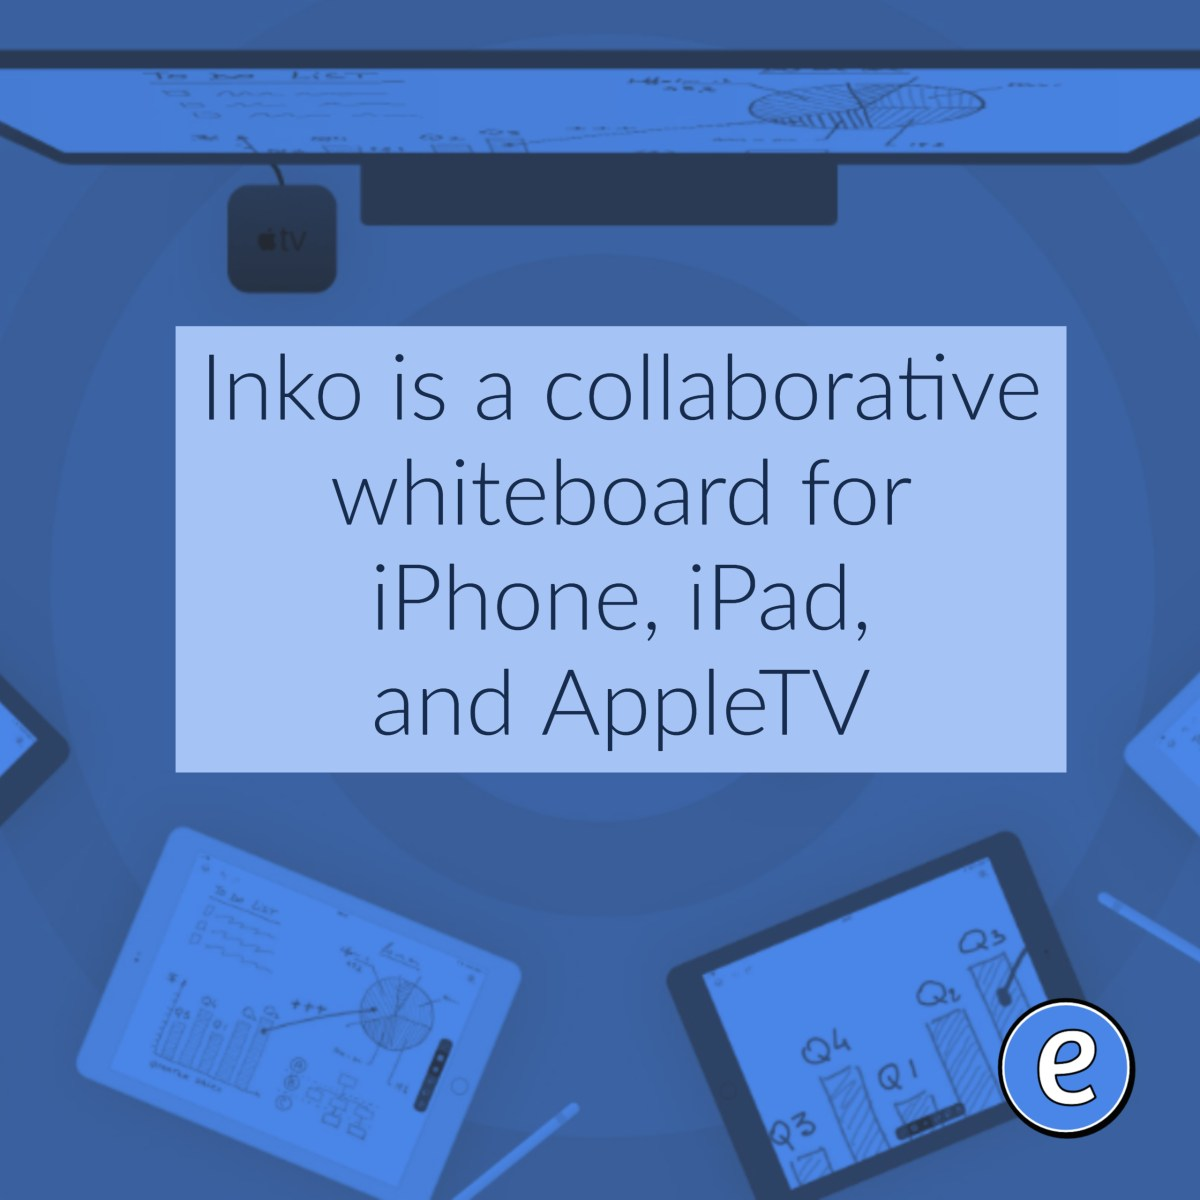 Inko is a collaborative whiteboard for iPhone, iPad, and AppleTV